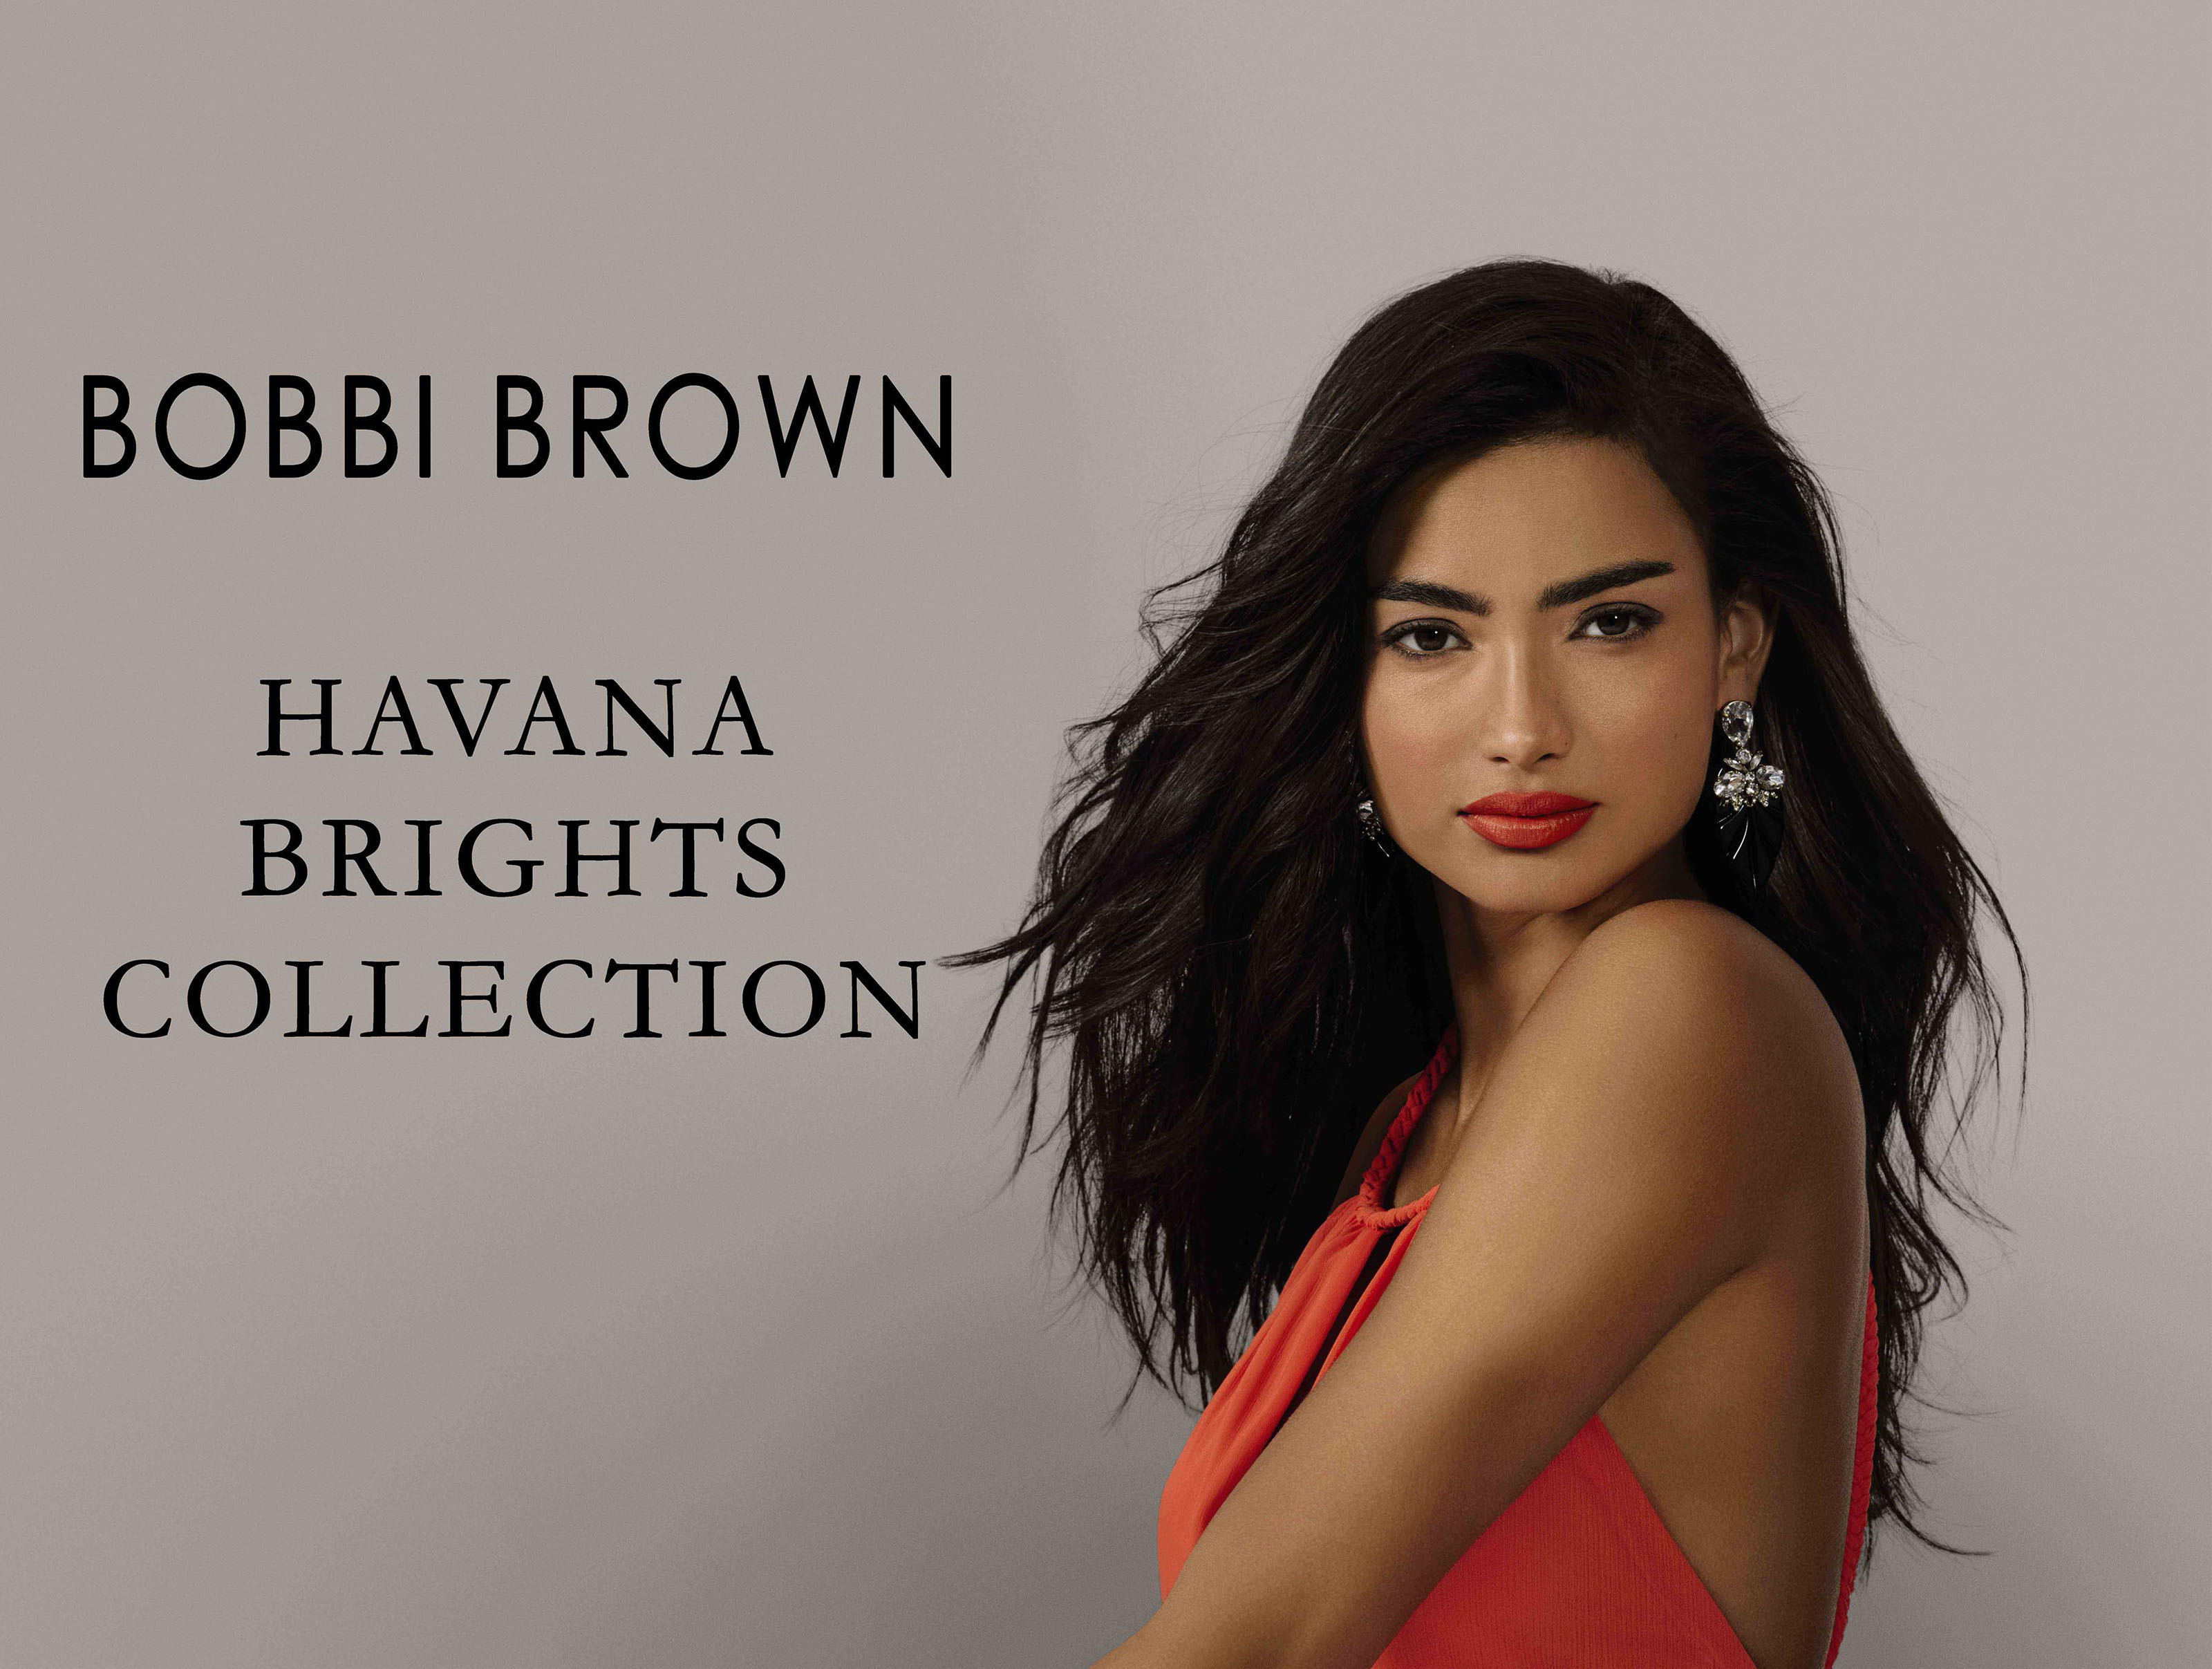 Bobbi Brown Havana Brights Collection || Diva In Me